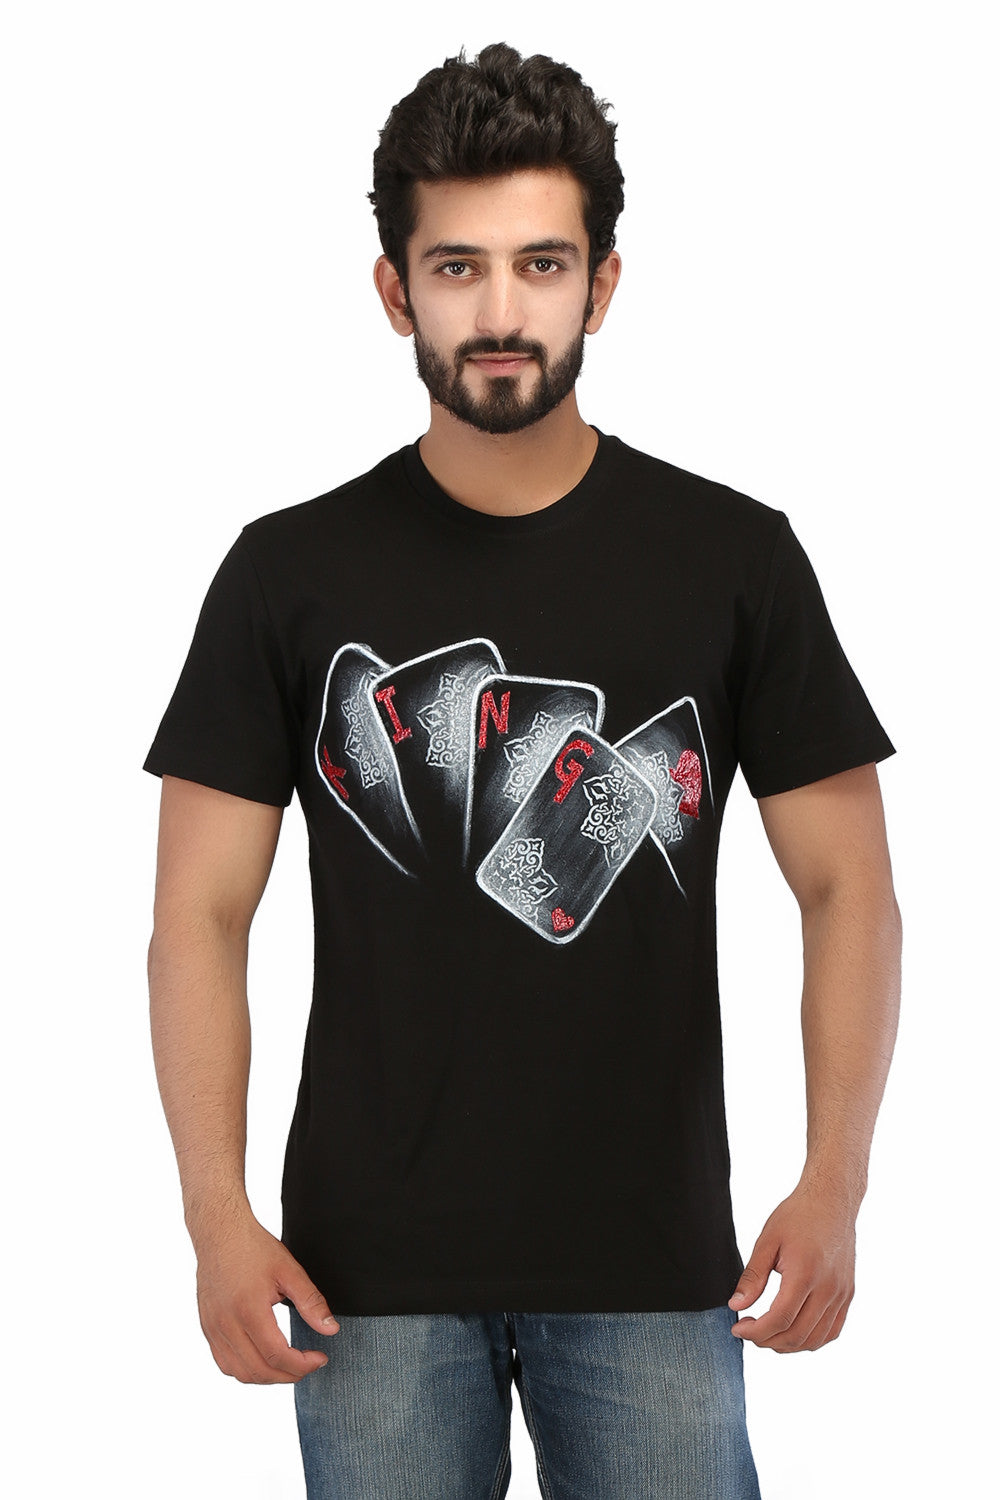 Hand-painted Reigning King Black T-shirt - Rang Rage  - 1